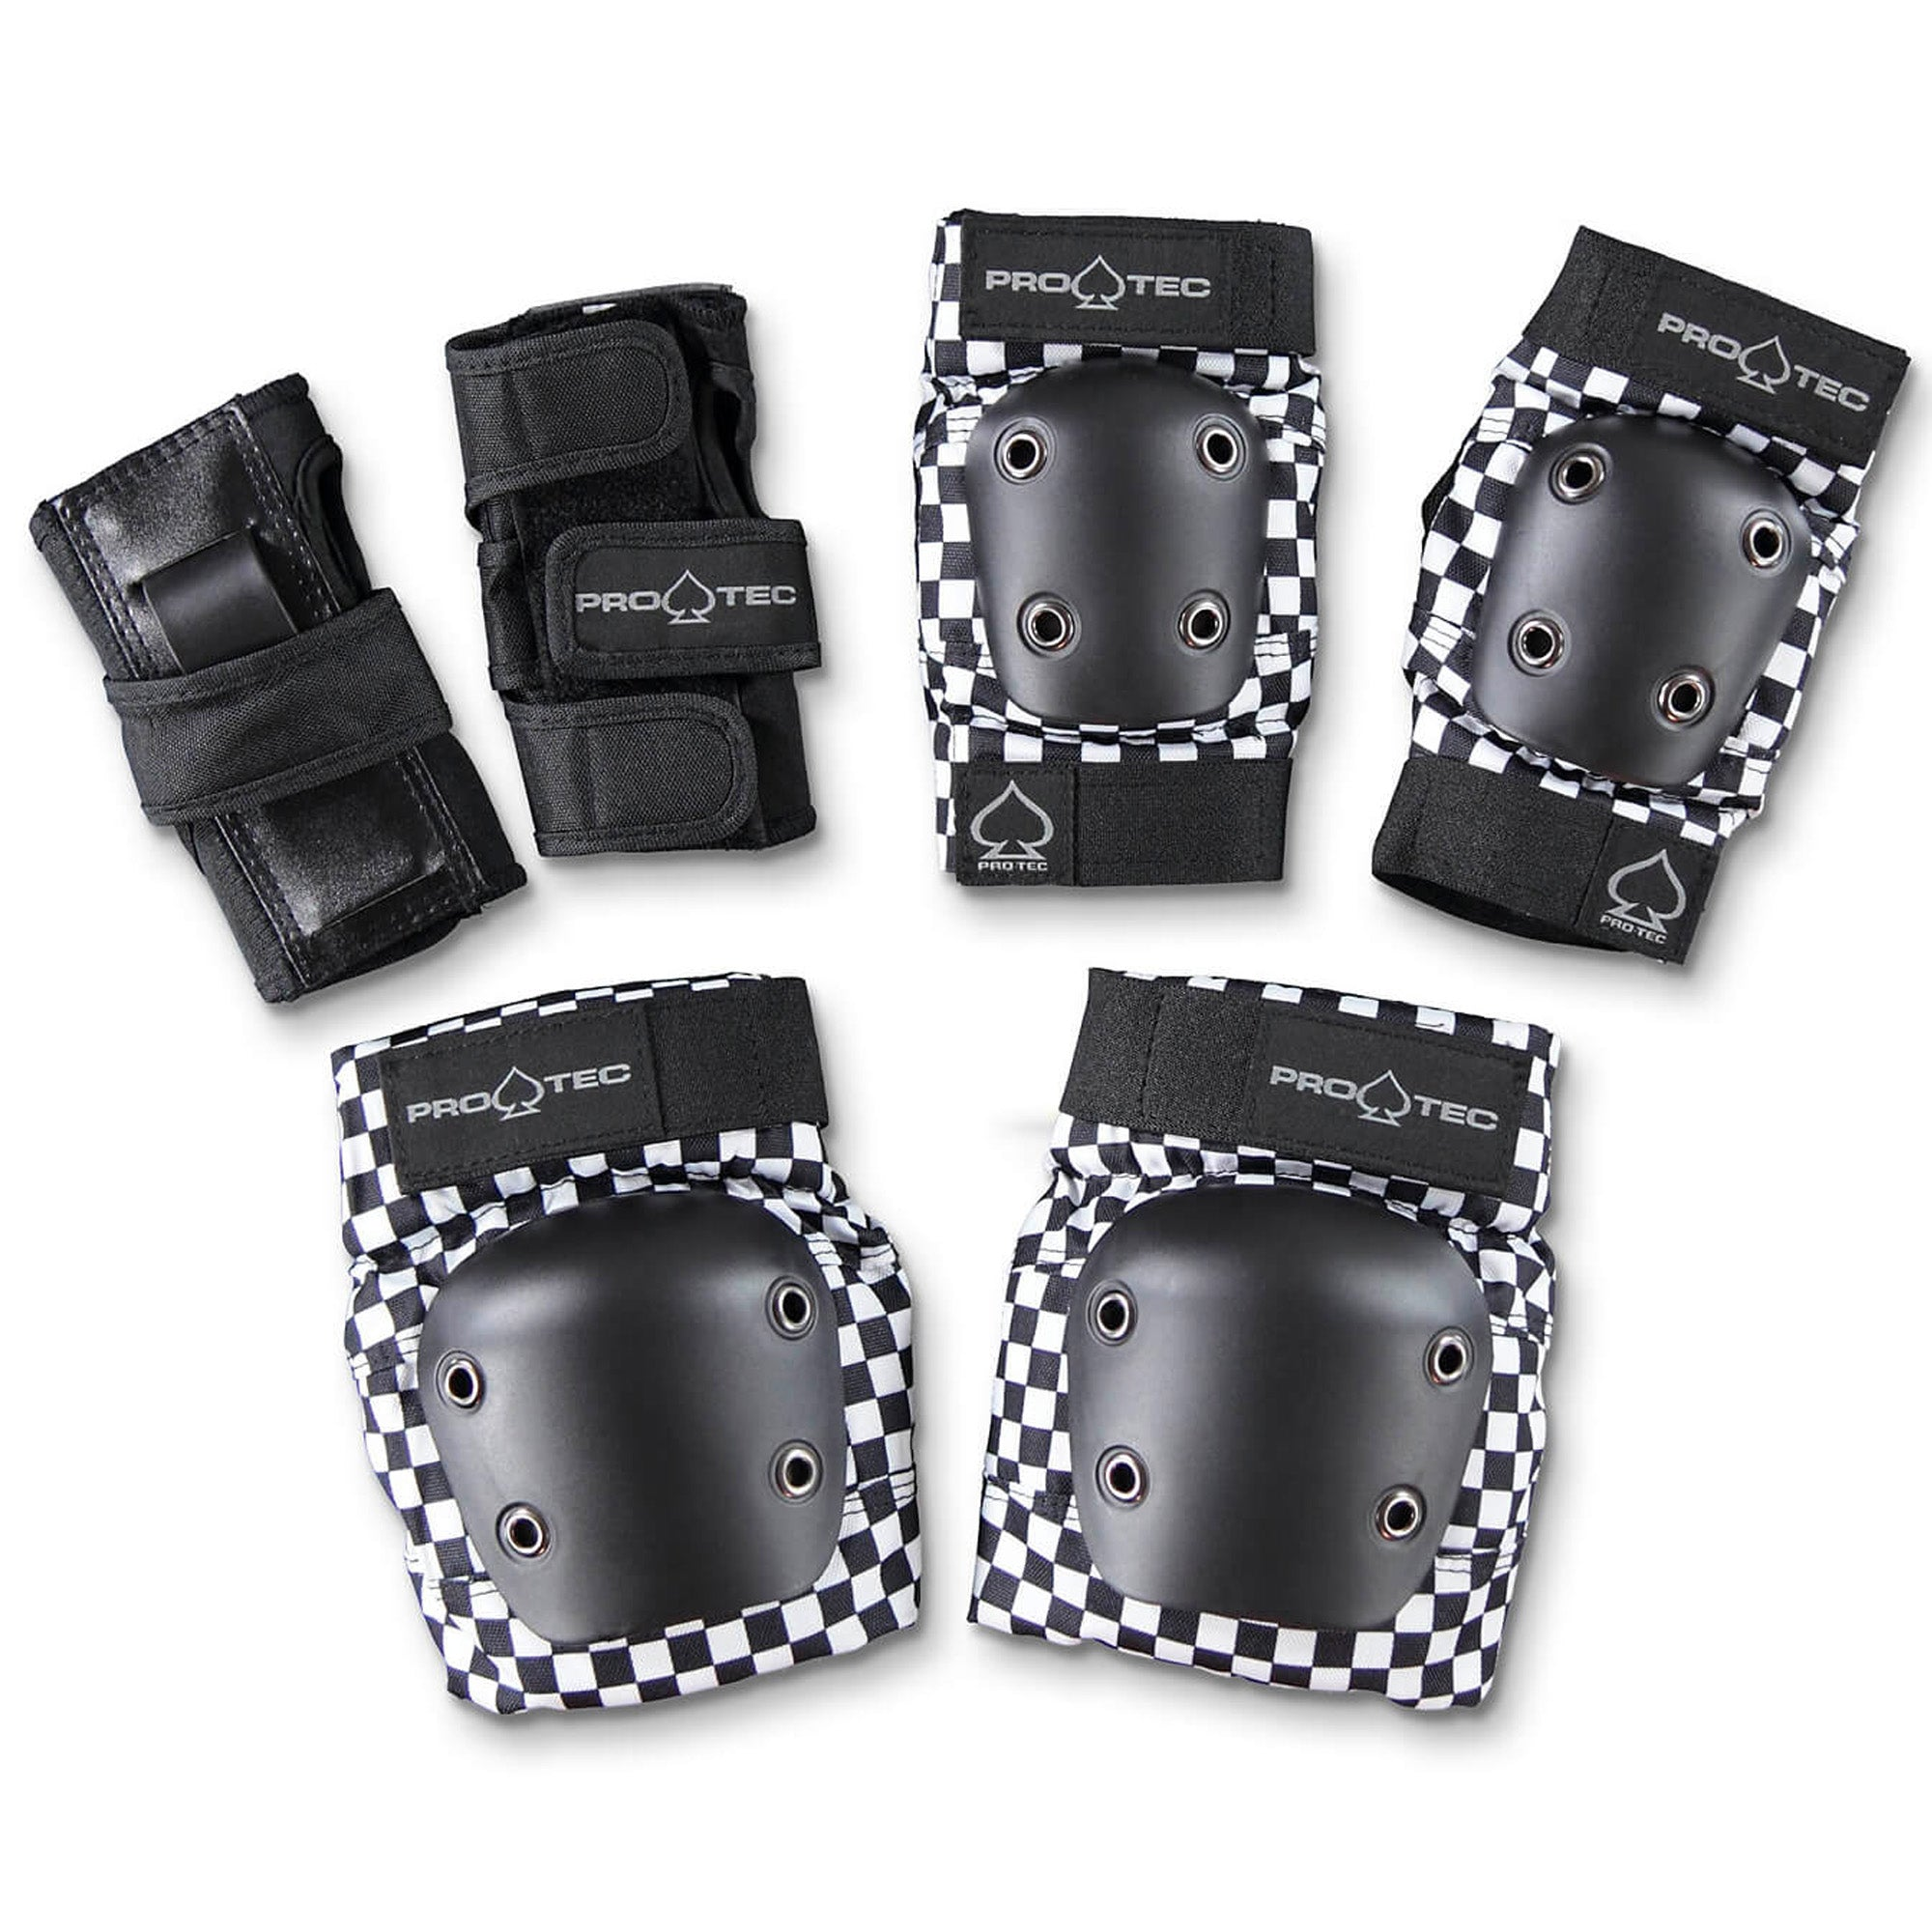 PROTEC STREET JUNIOR KNEE/ELBOW PADS 3 PACK CHECKER BLACK/WHITE